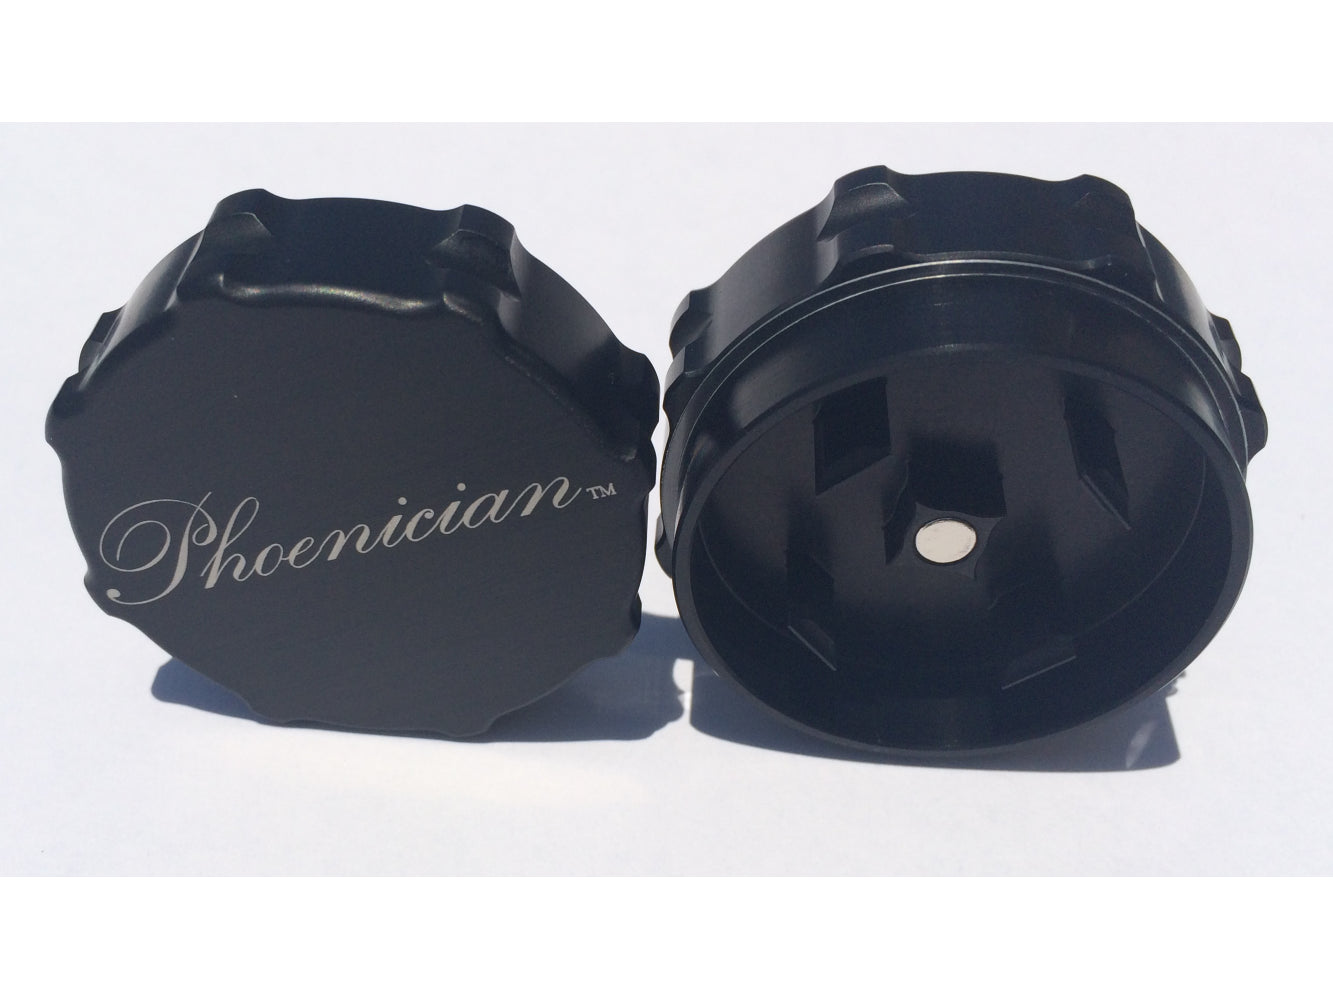 DISCONTINUED Phoenician Herb Grinder 2pc. - Small